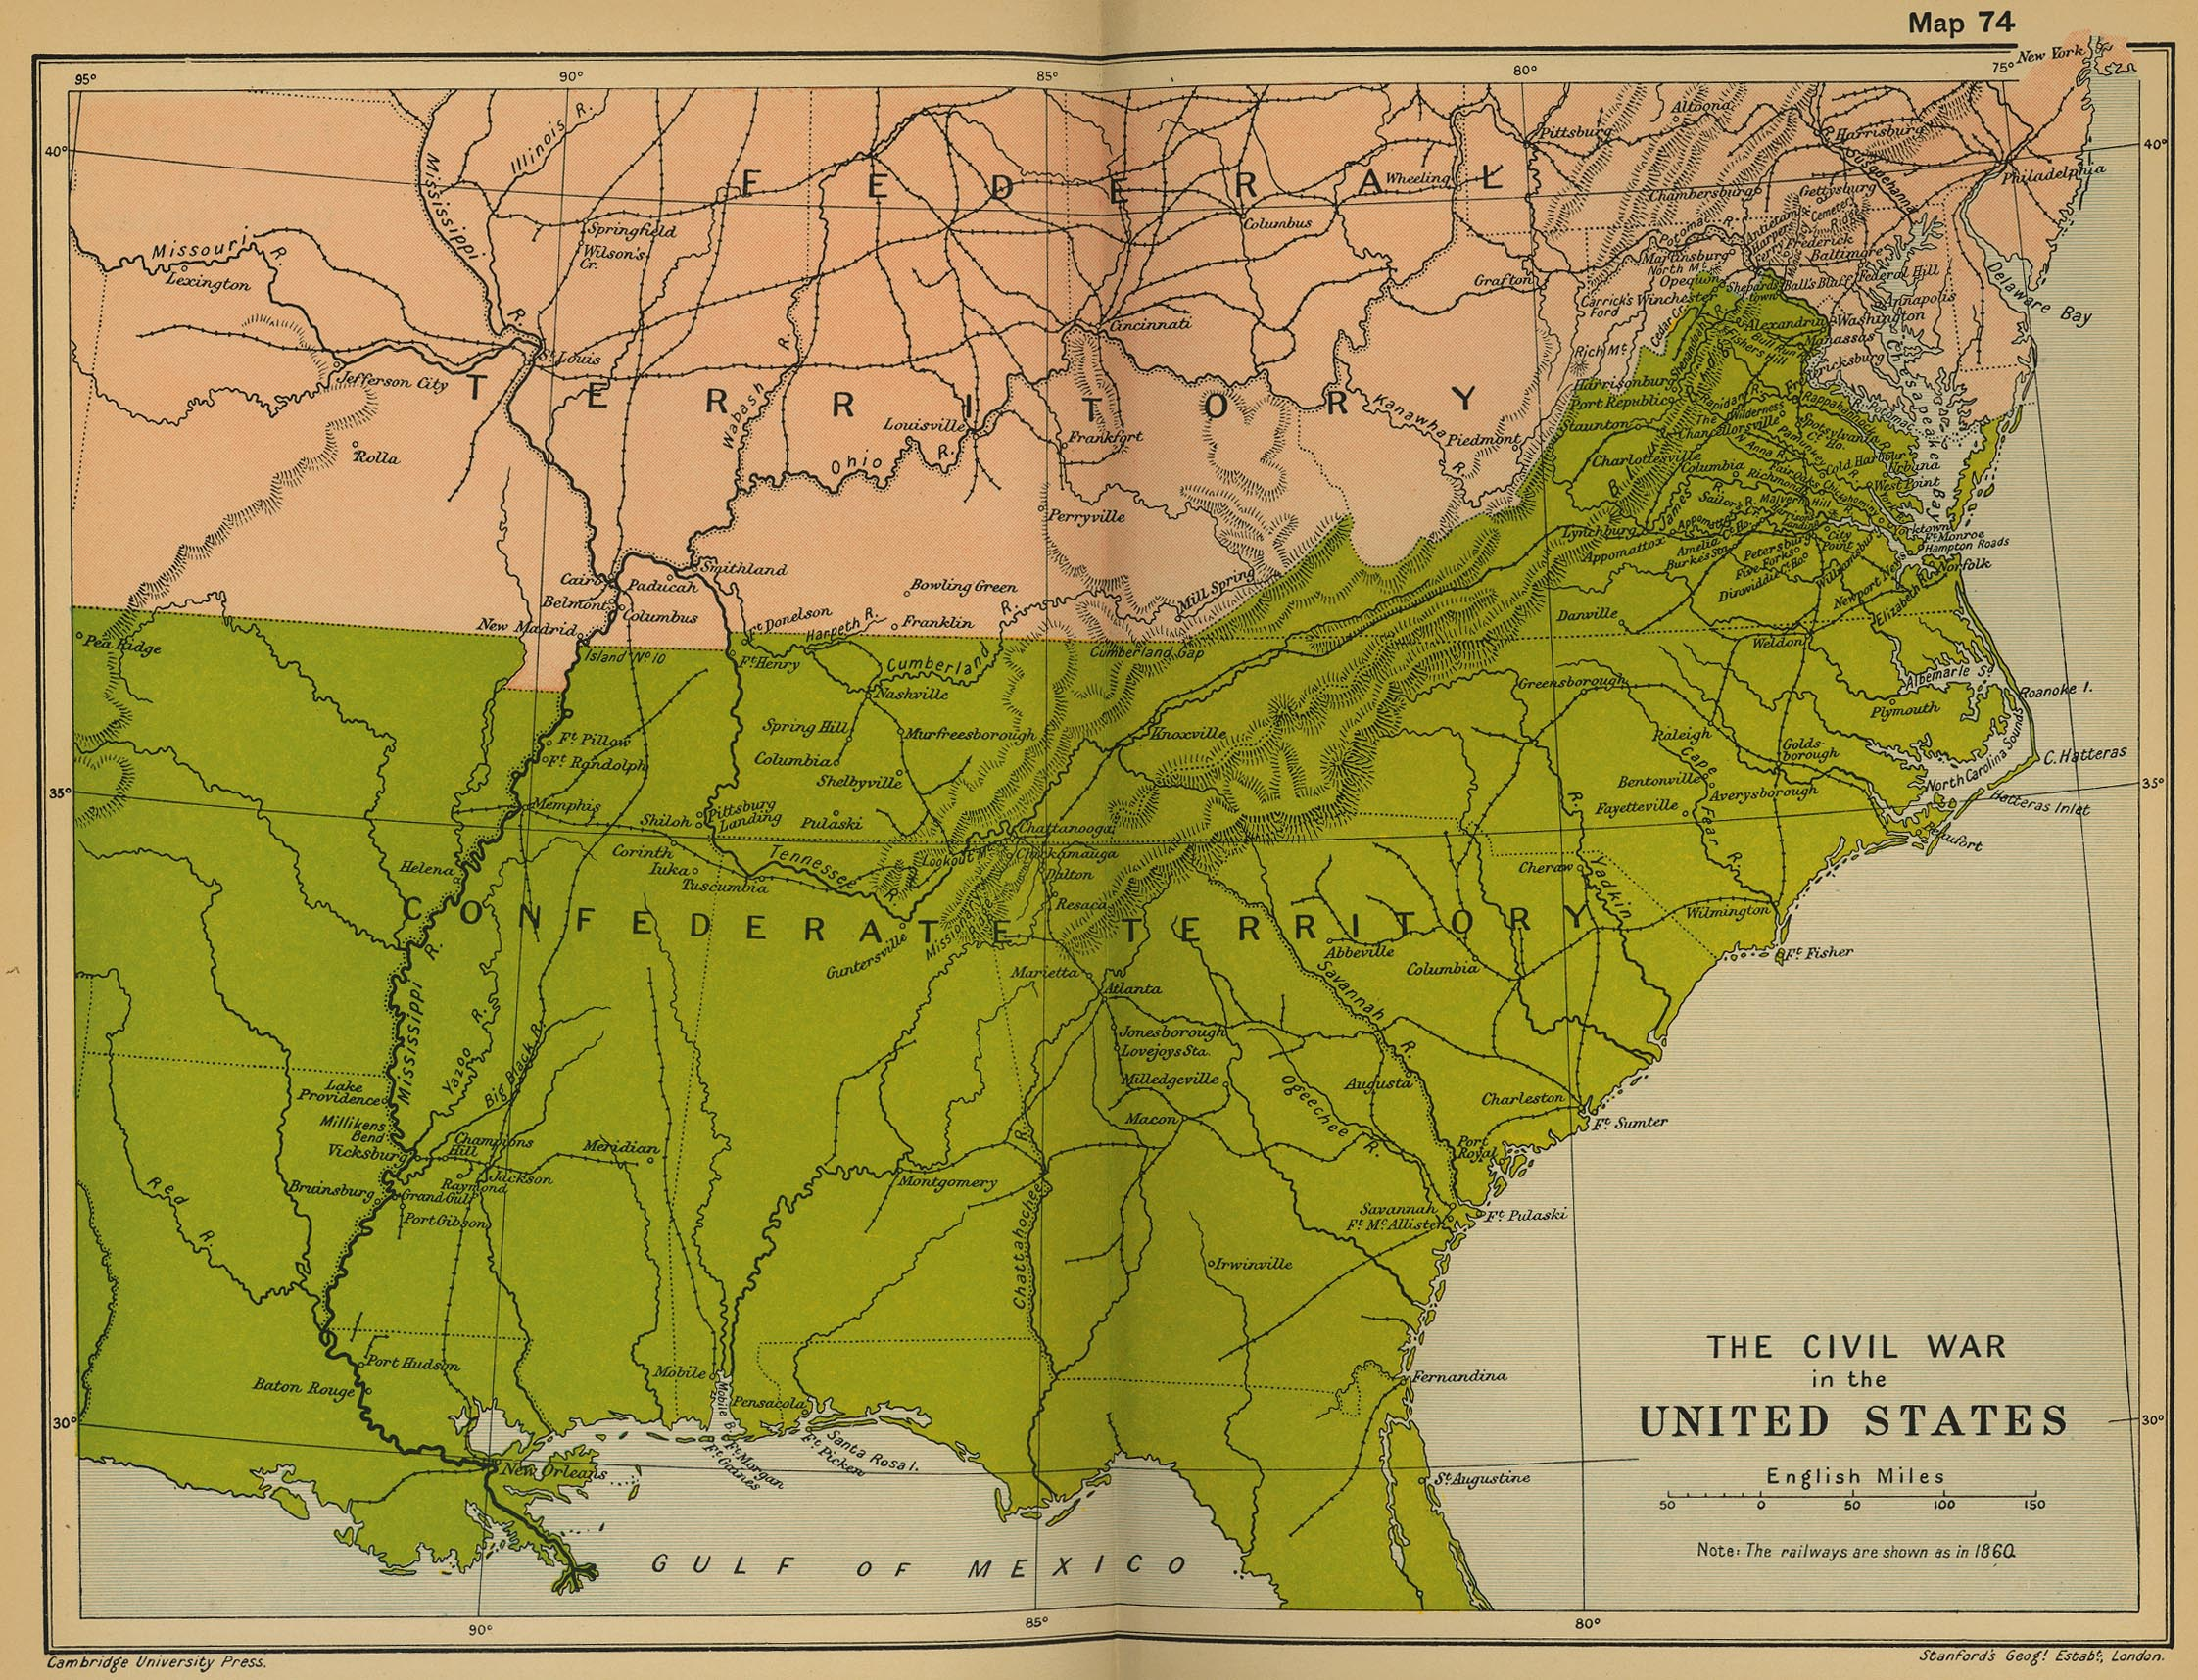 Map of the Civil War in the United States 1861-1865